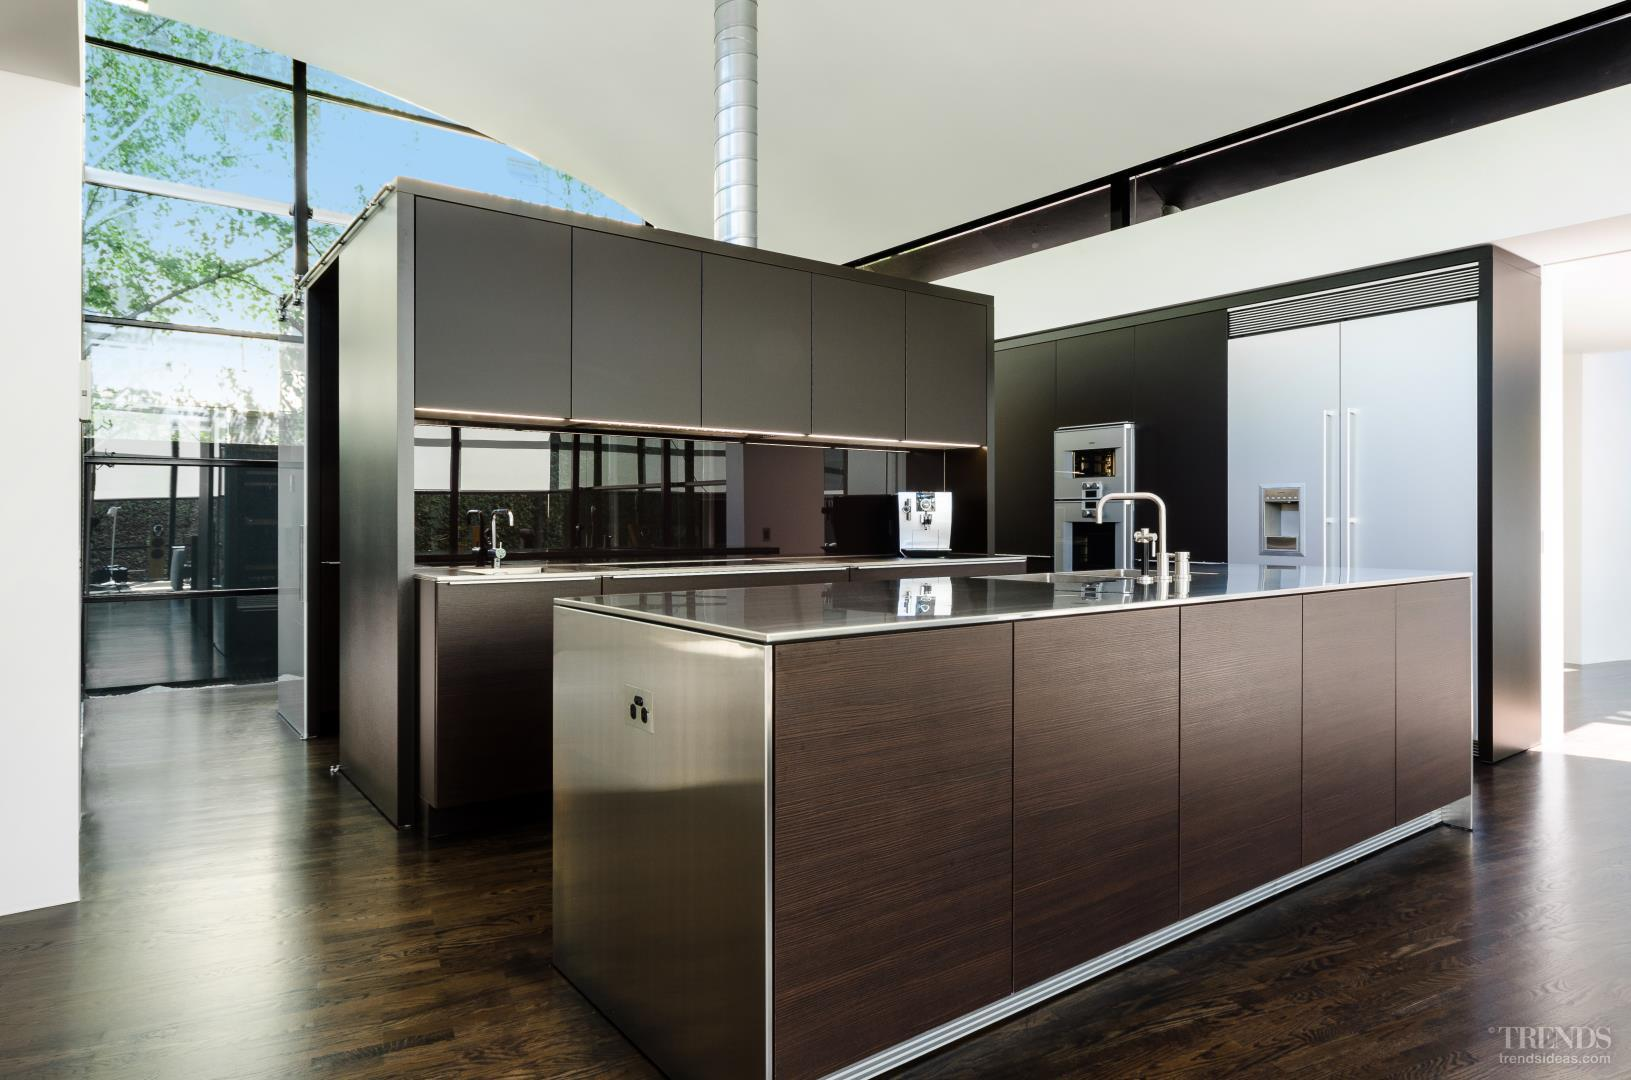 Cube Shaped Kitchen Combines Two Tone Poggenpohl Cabinetry With Stainless Steel Benchtops